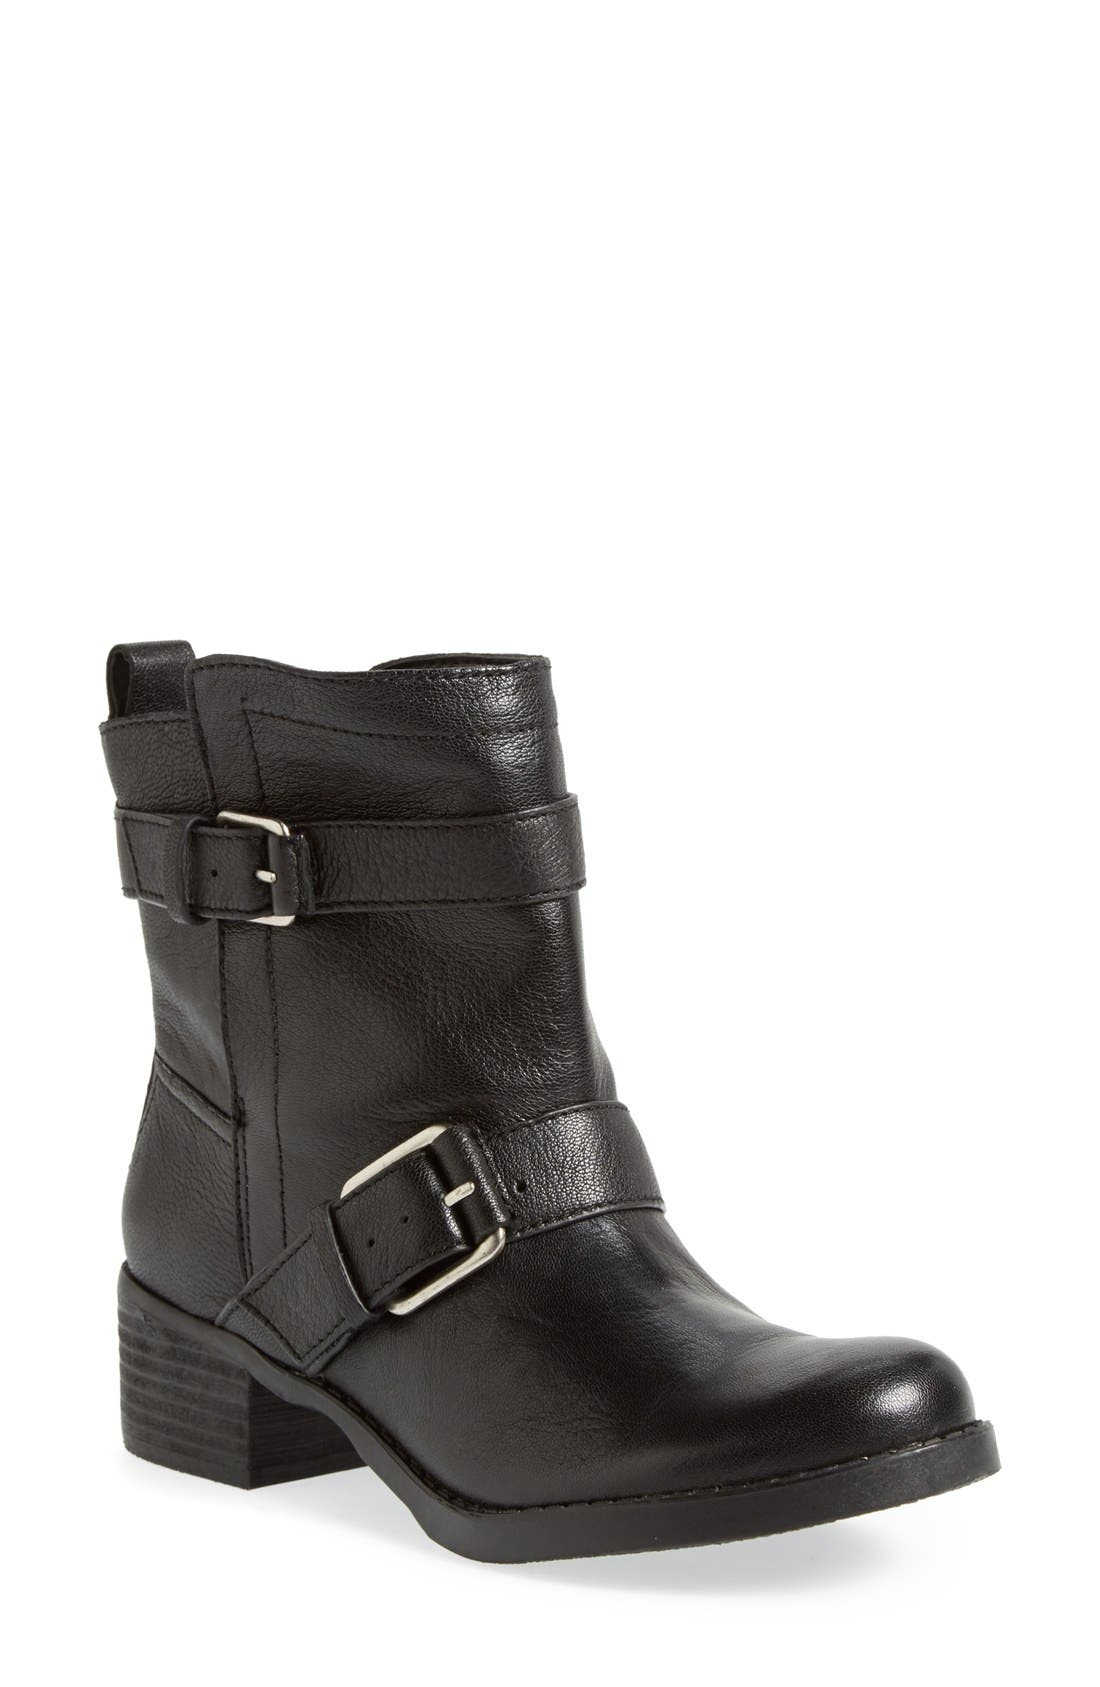 Main Image - Sole Society 'Kai' Suede Moto Boot (Women)